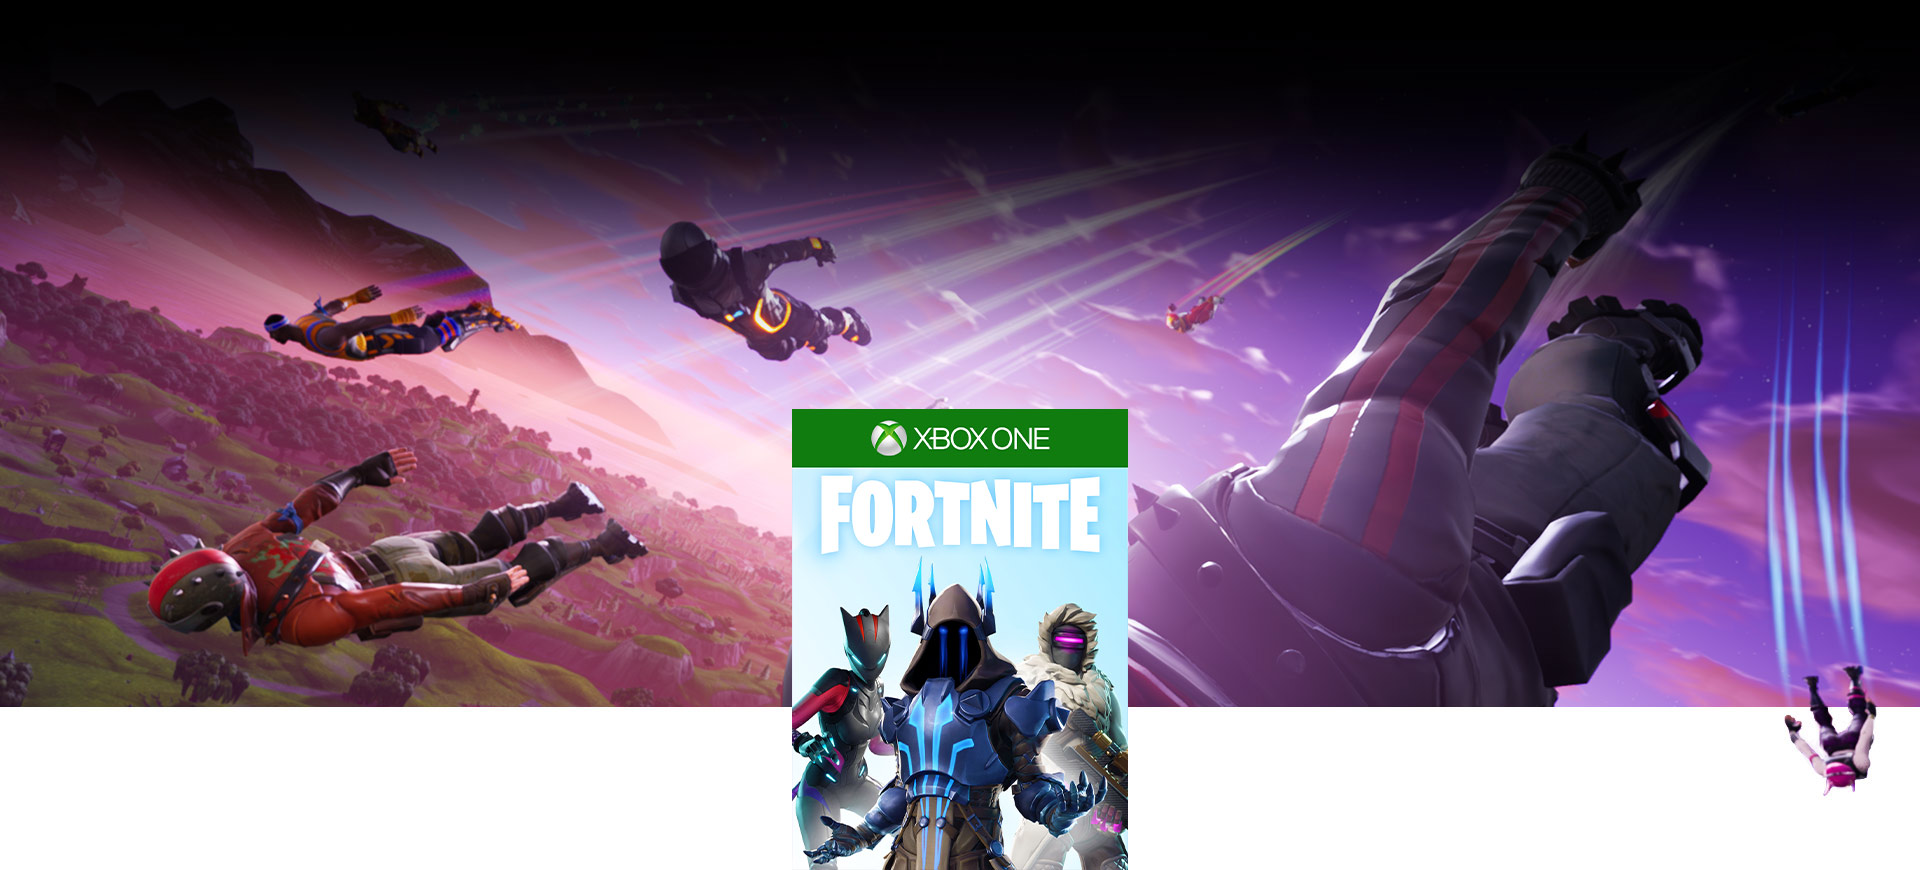 Fortnite-coverbilde, Fortnite-karakterer som skydiver